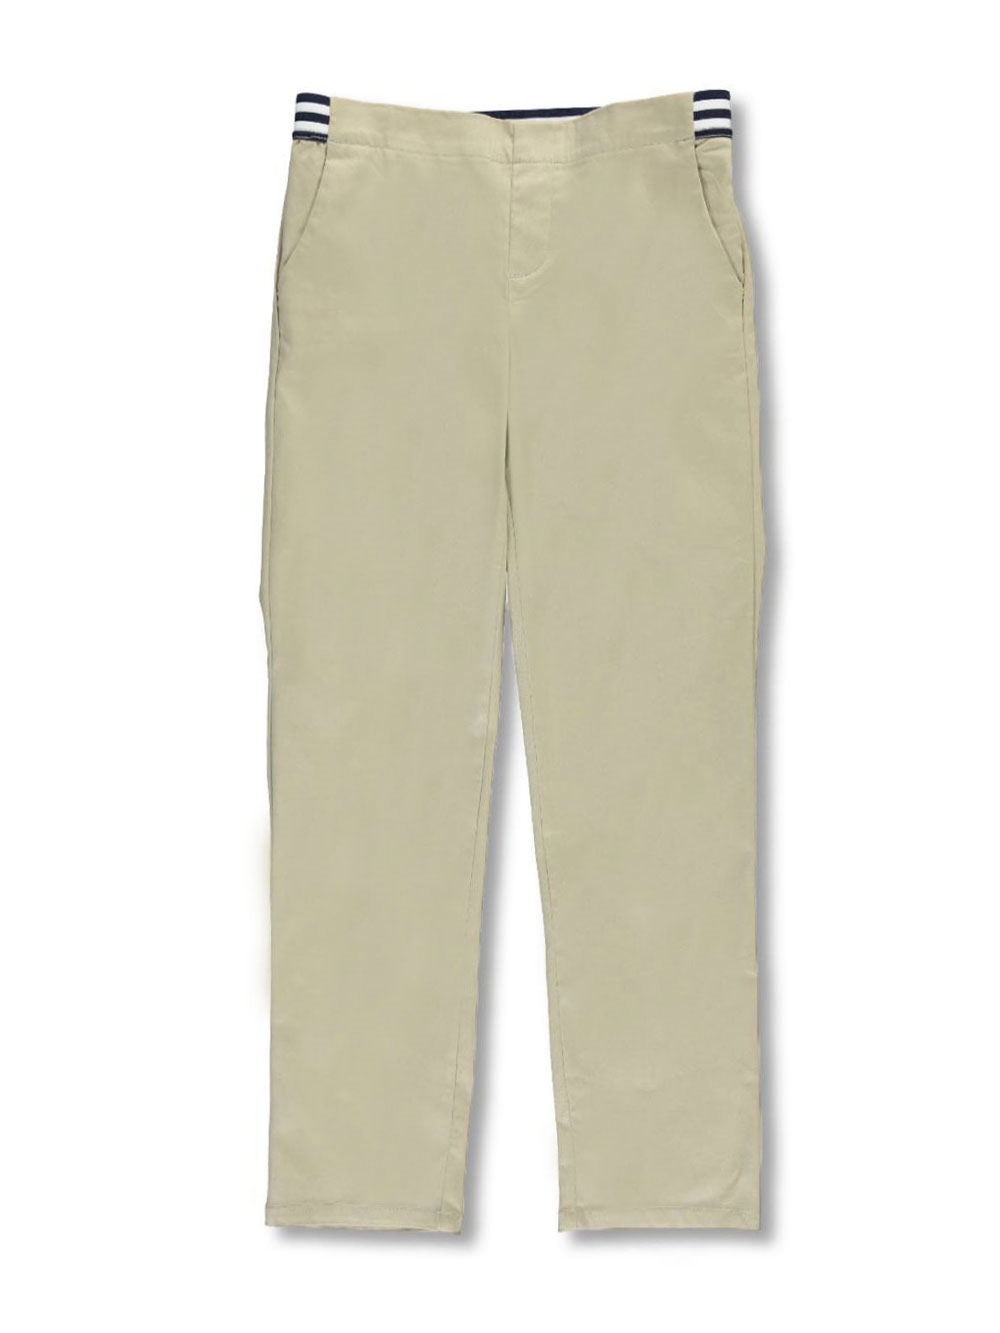 Girls Uniform Pants Junior Khaki Cotton Blend French Toast School Uniform,/&20